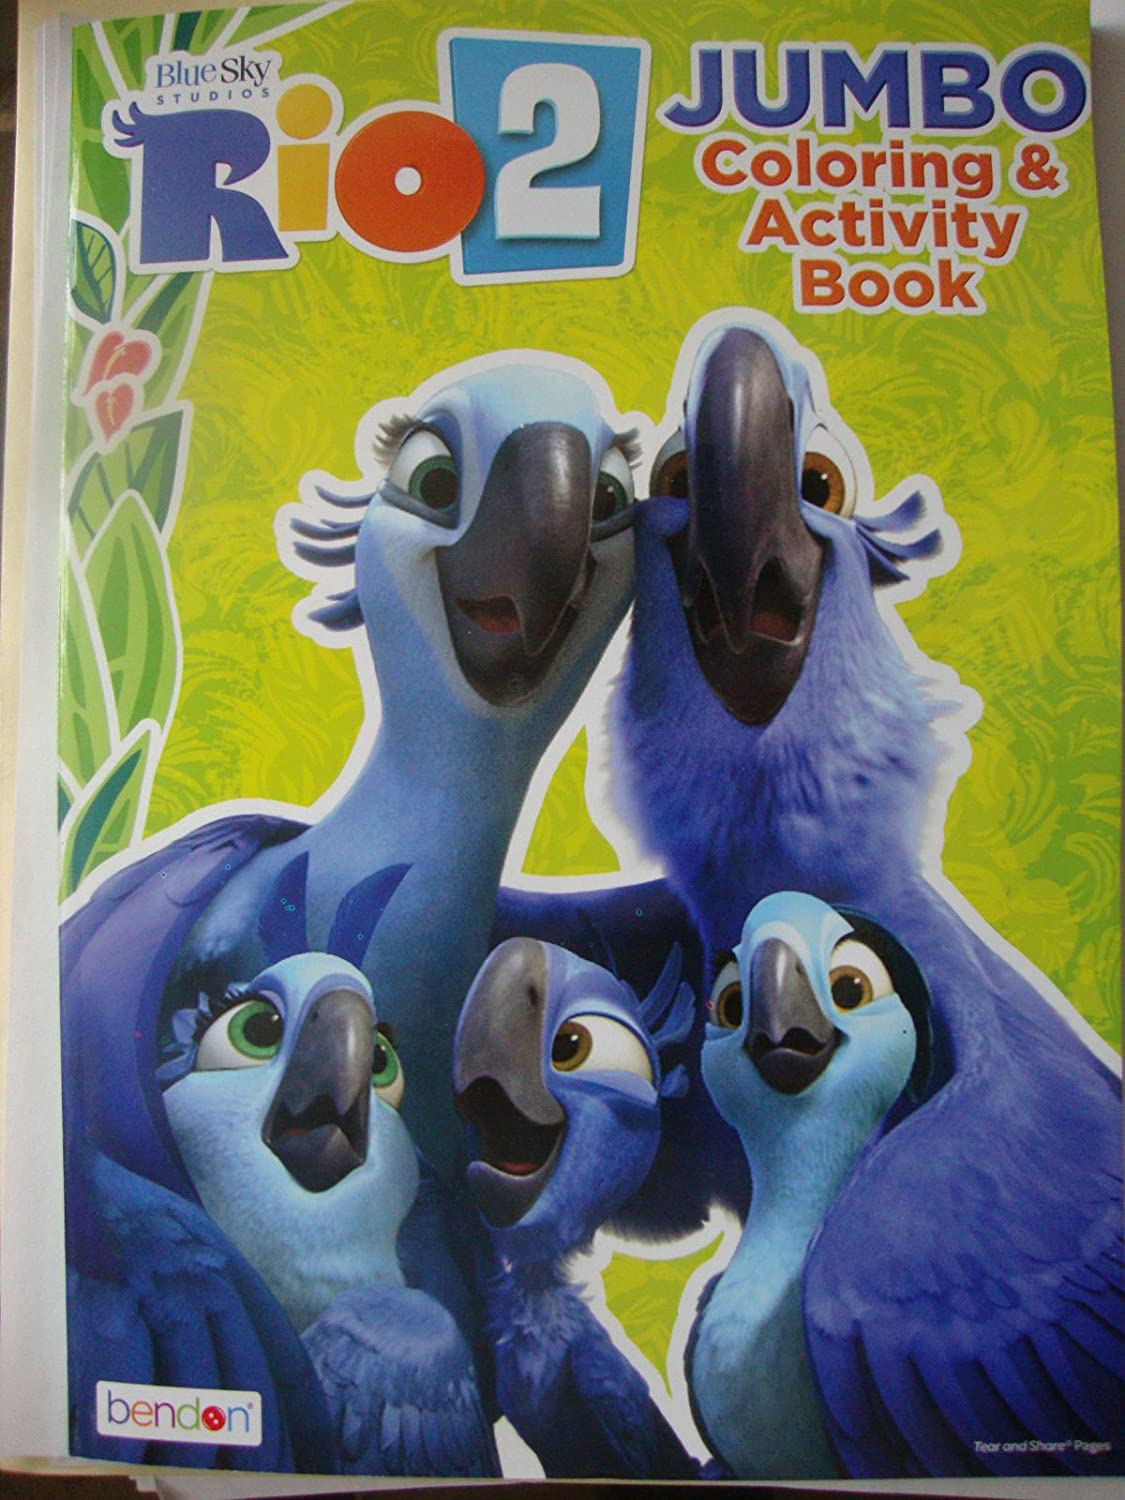 Rio 2 Jumbo Farbeing & Activity Book (96 Pages) Assorted, Designs Vary by Blau Sky Studios